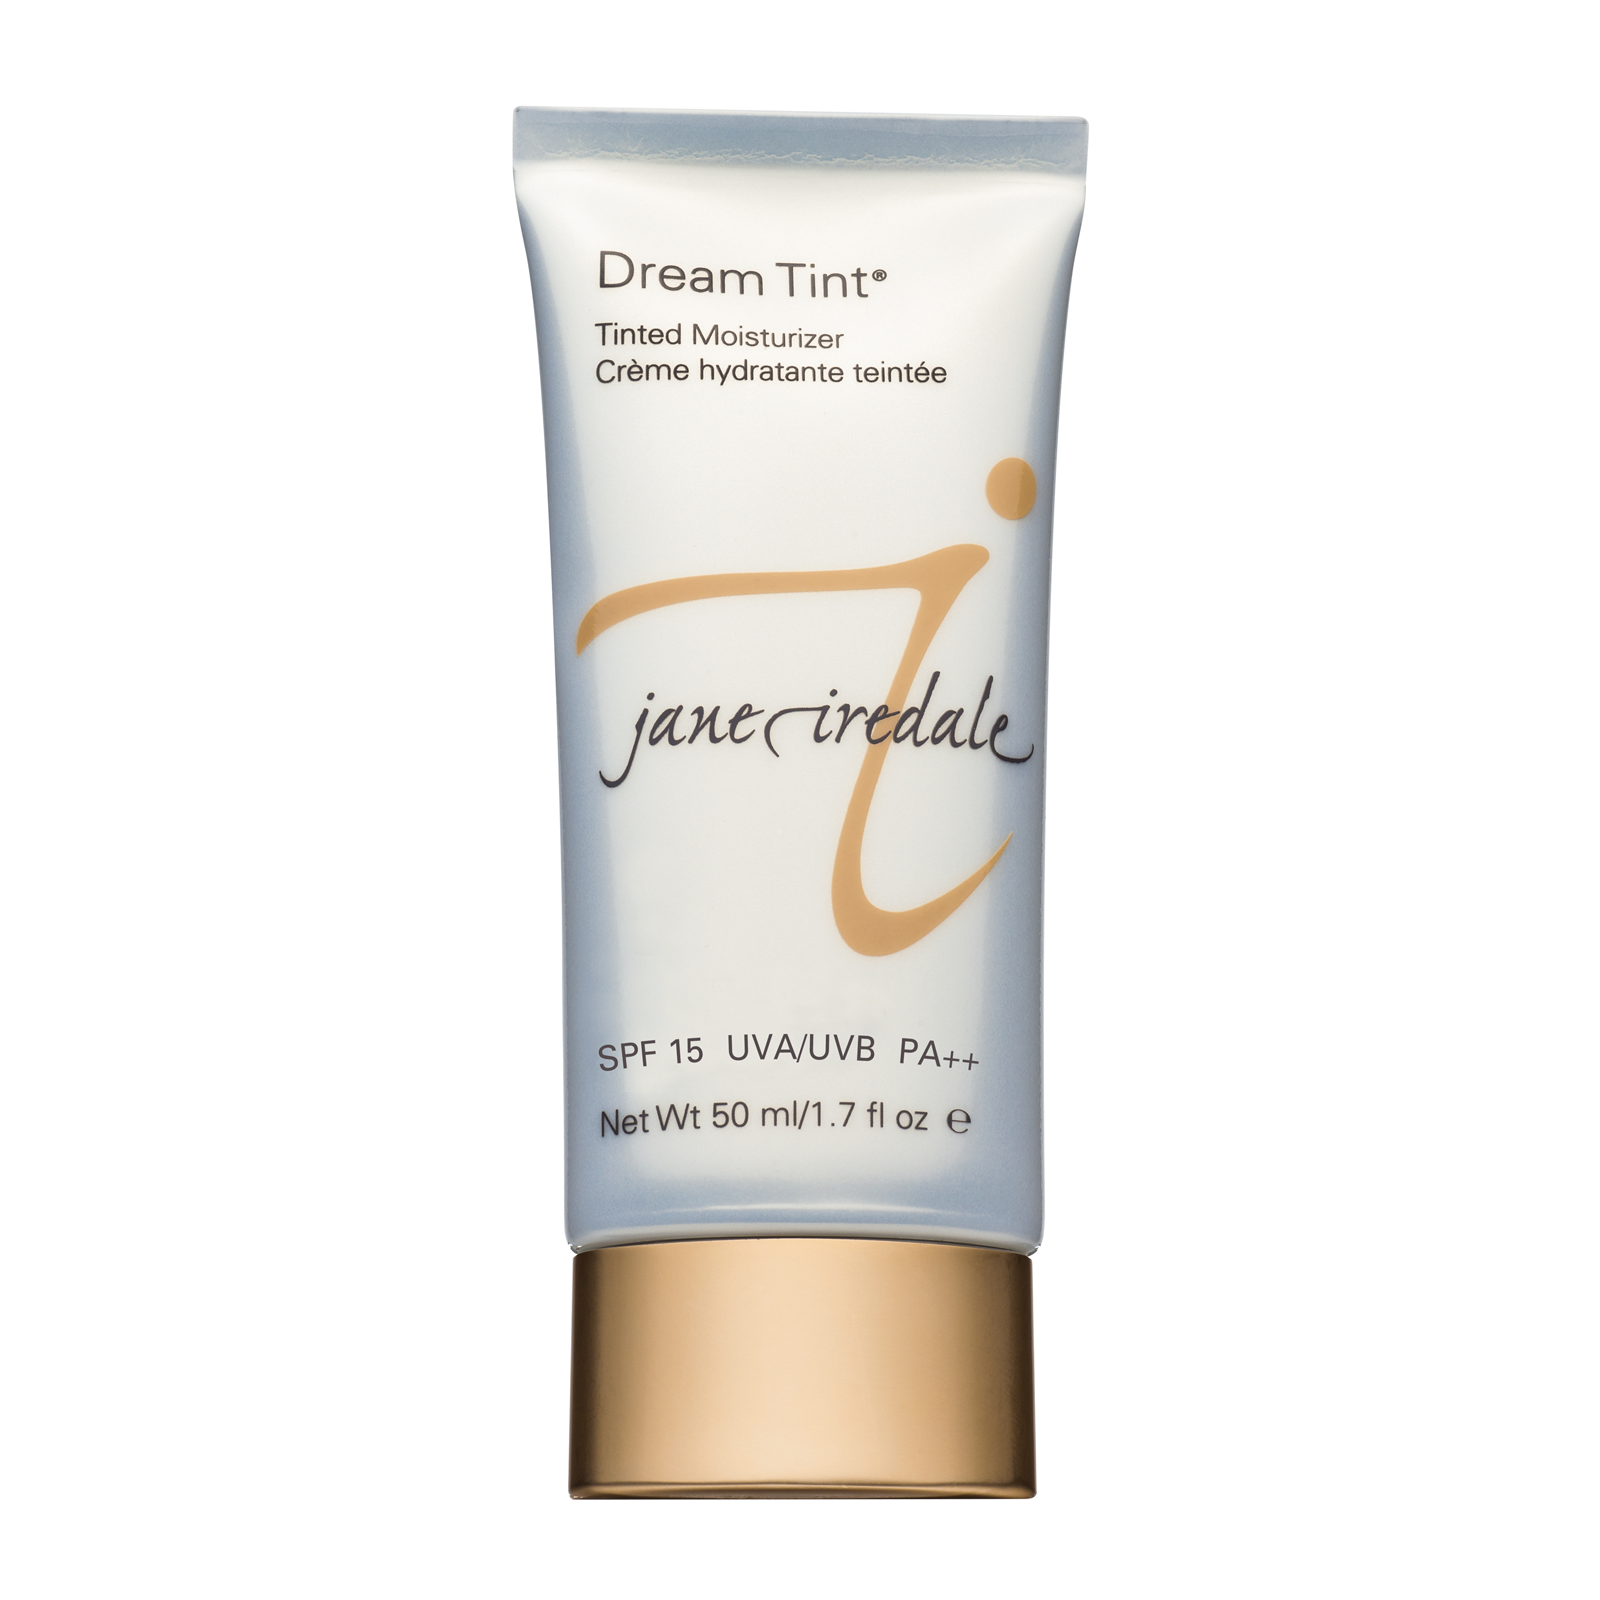 Jane Iredale Dream Tint Moisture Tint SPF 15 50ml